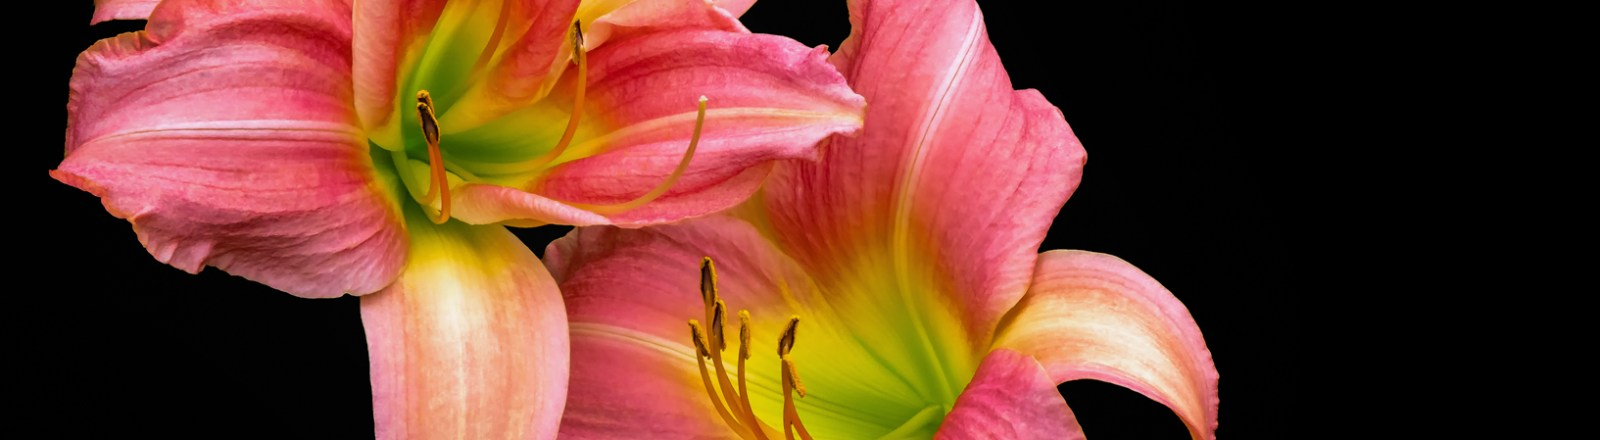 Lilies on Black Backgrounds (7 of 10)